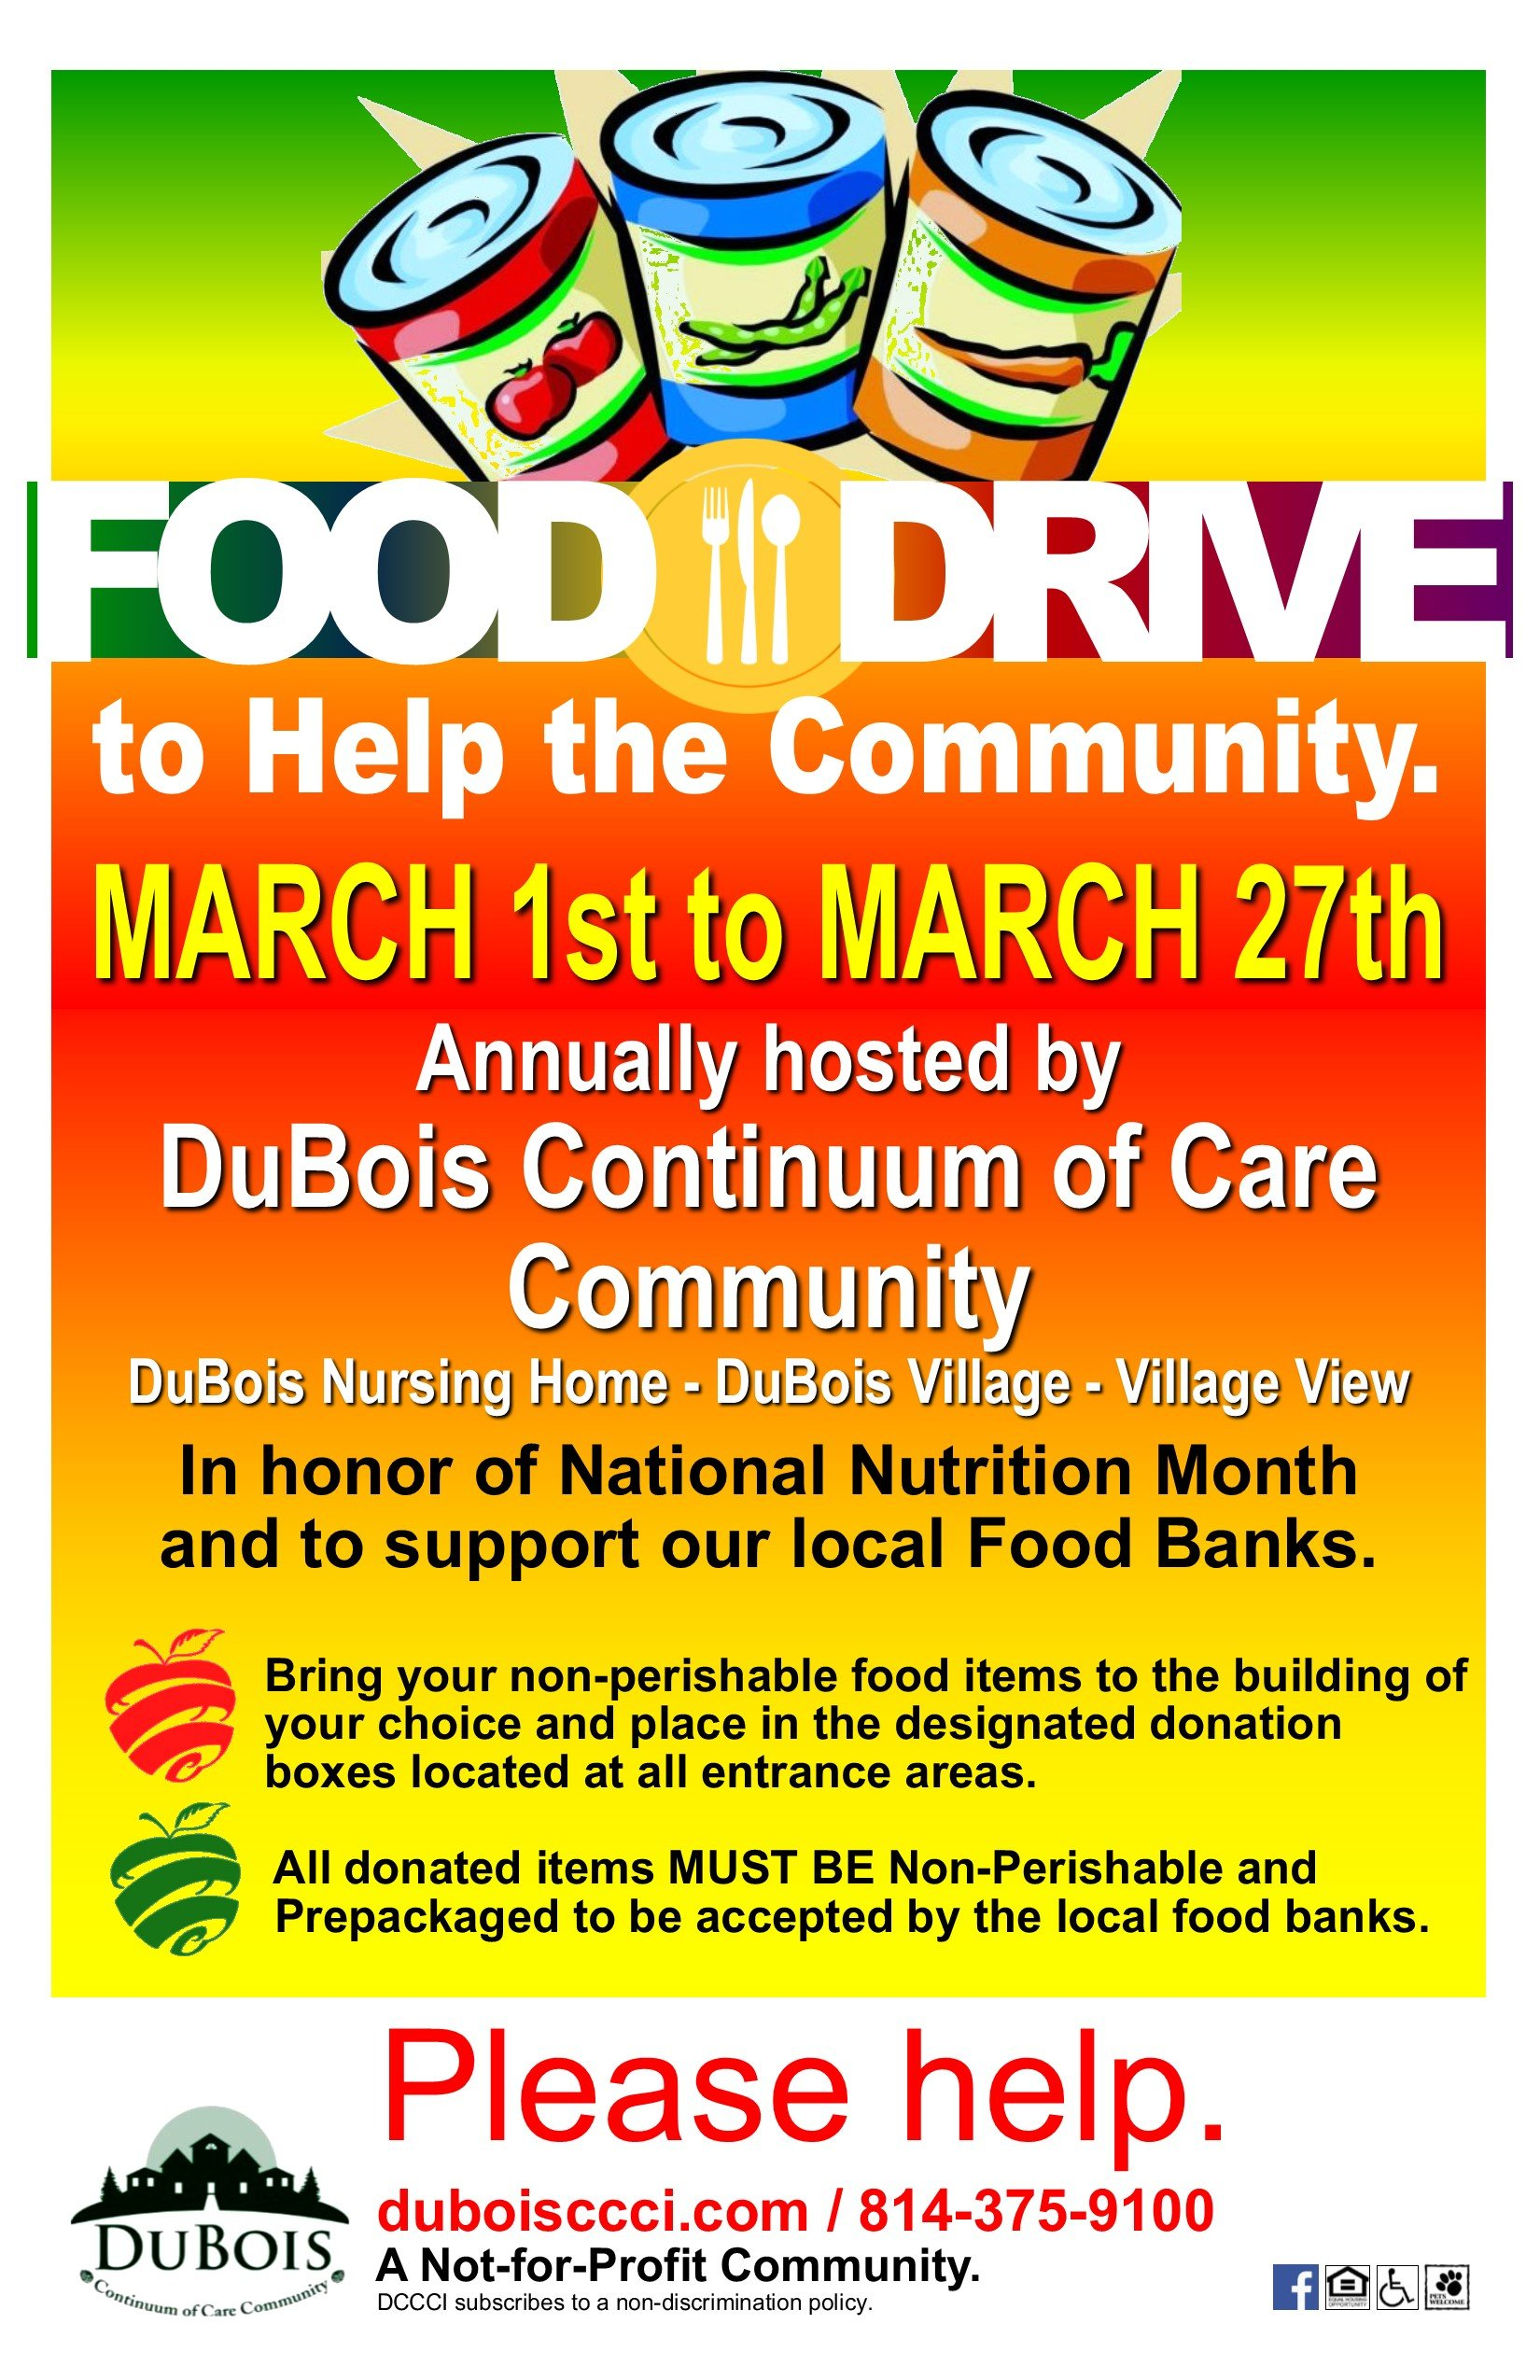 321355688_2020DCCCIMarchFoodDrivePoster1